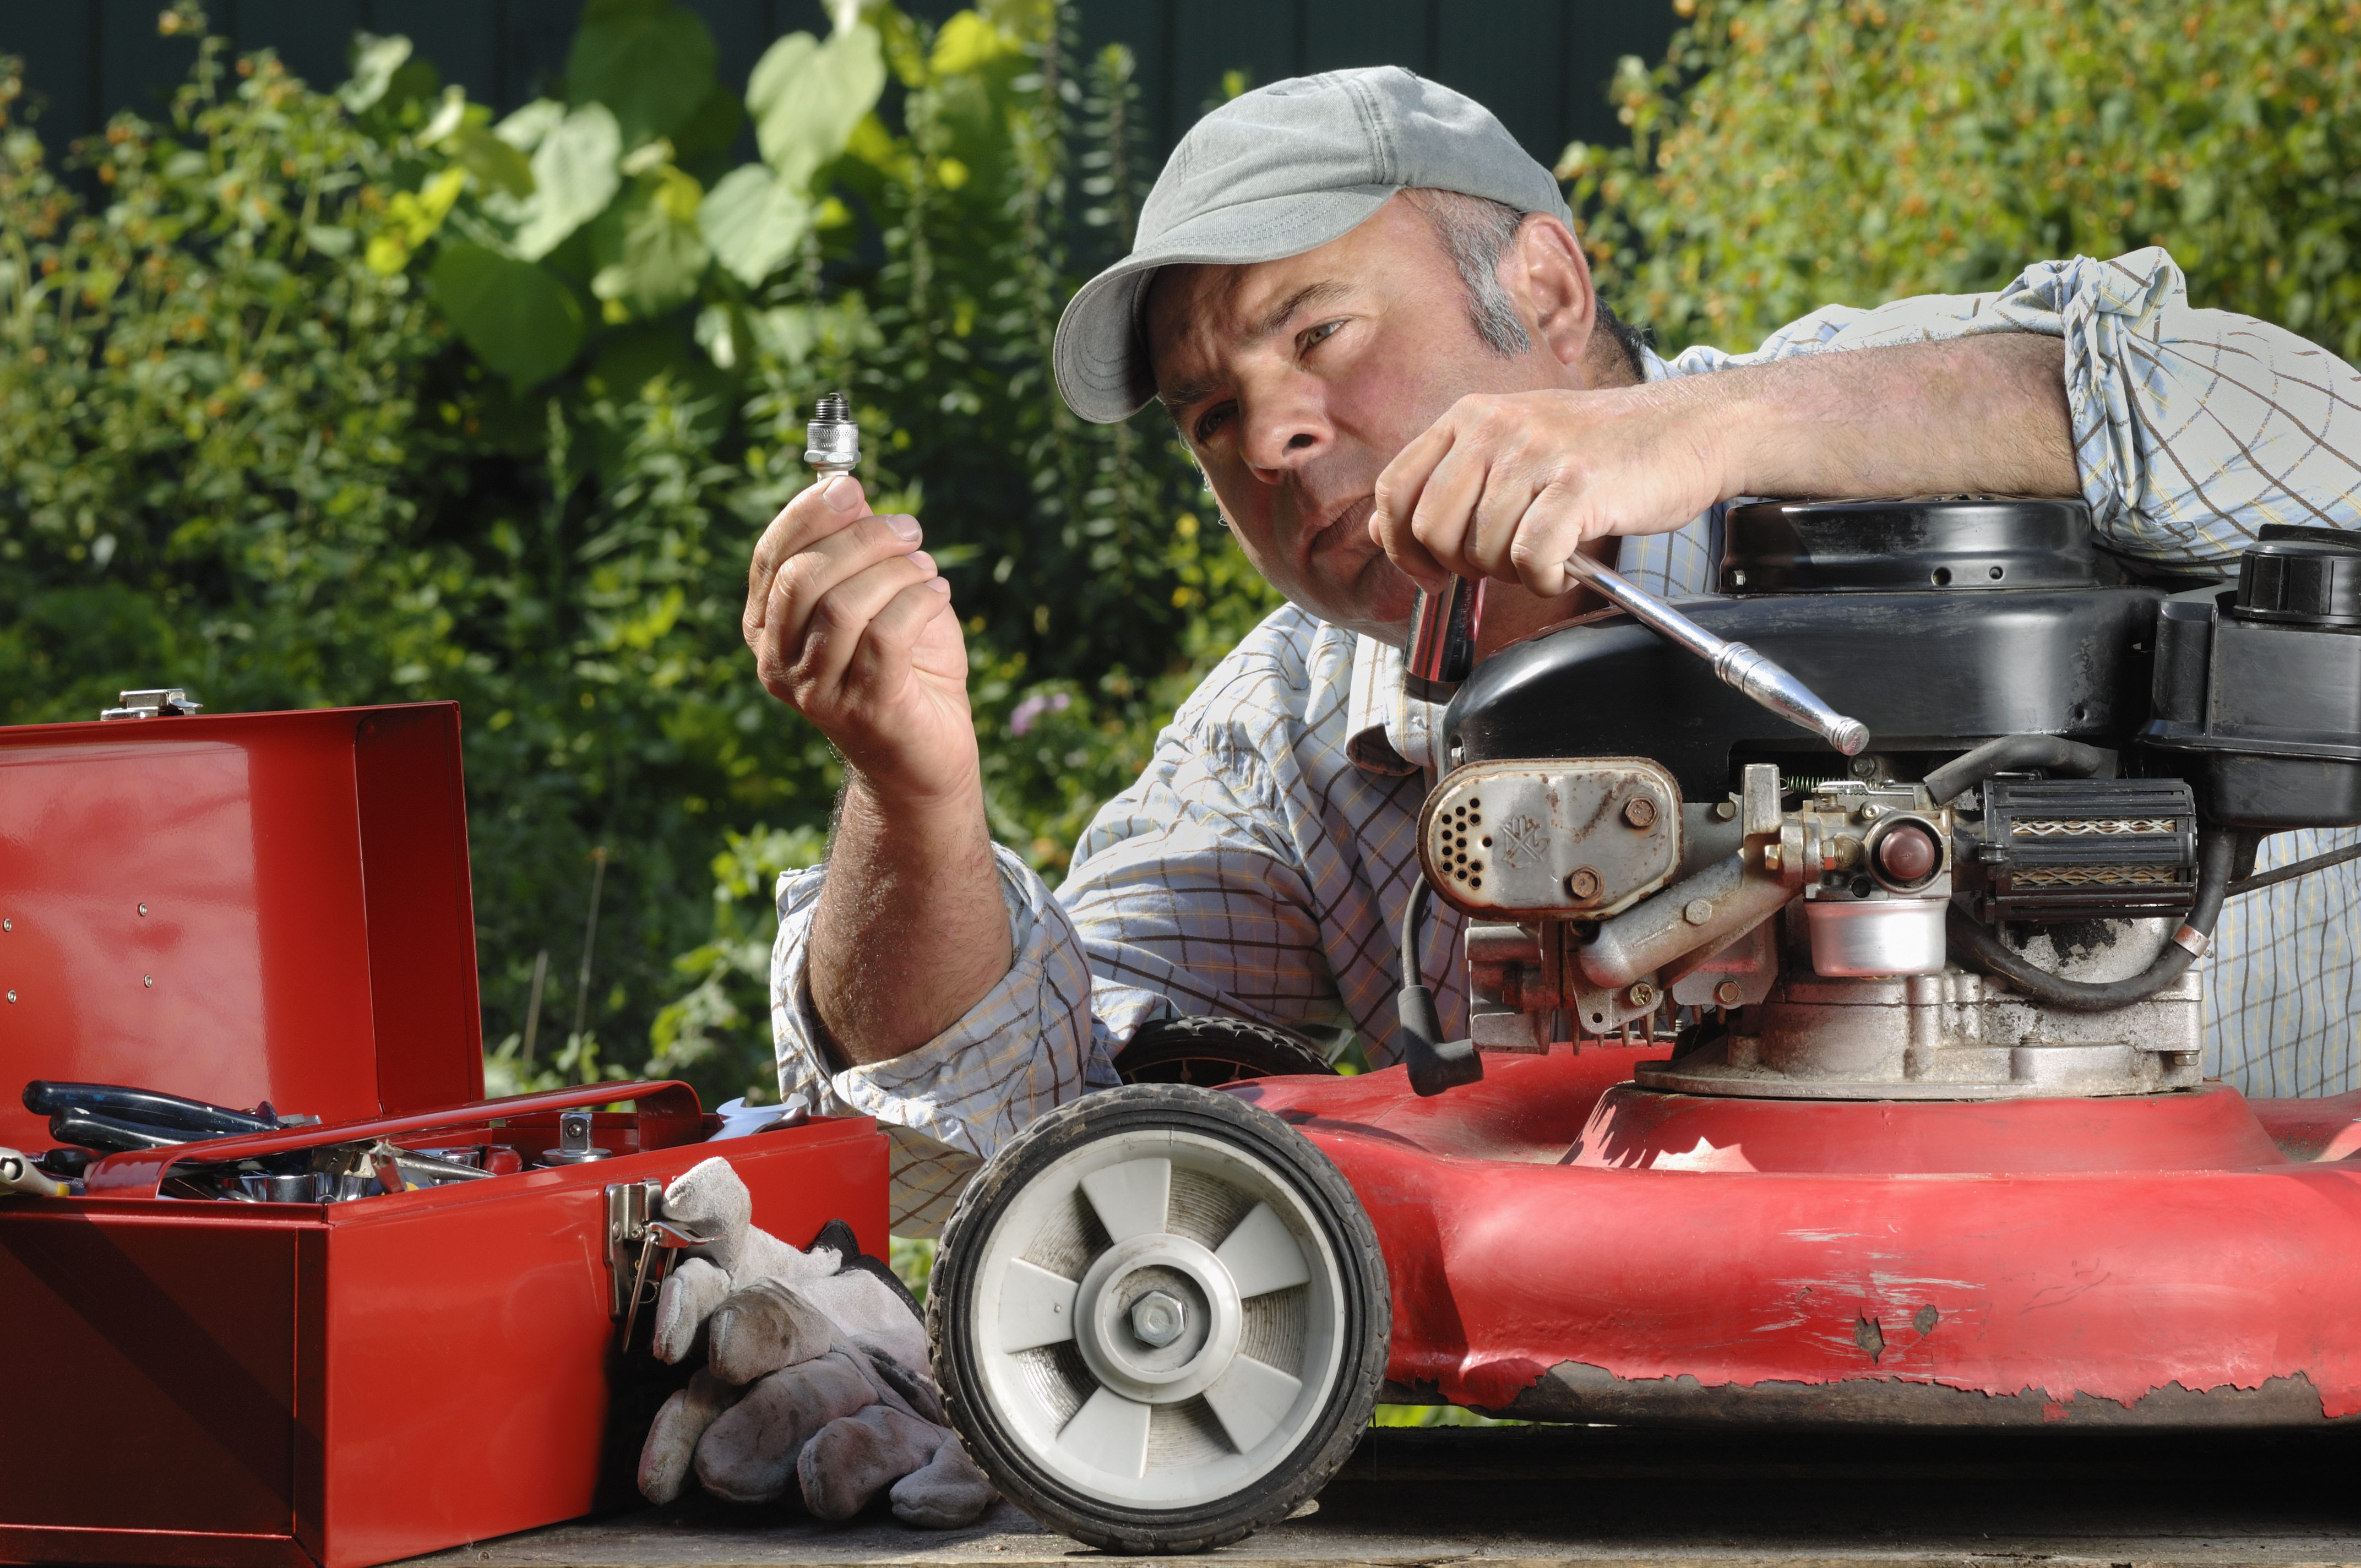 How to Change a the Oil in a Lawn Mower | Hunker